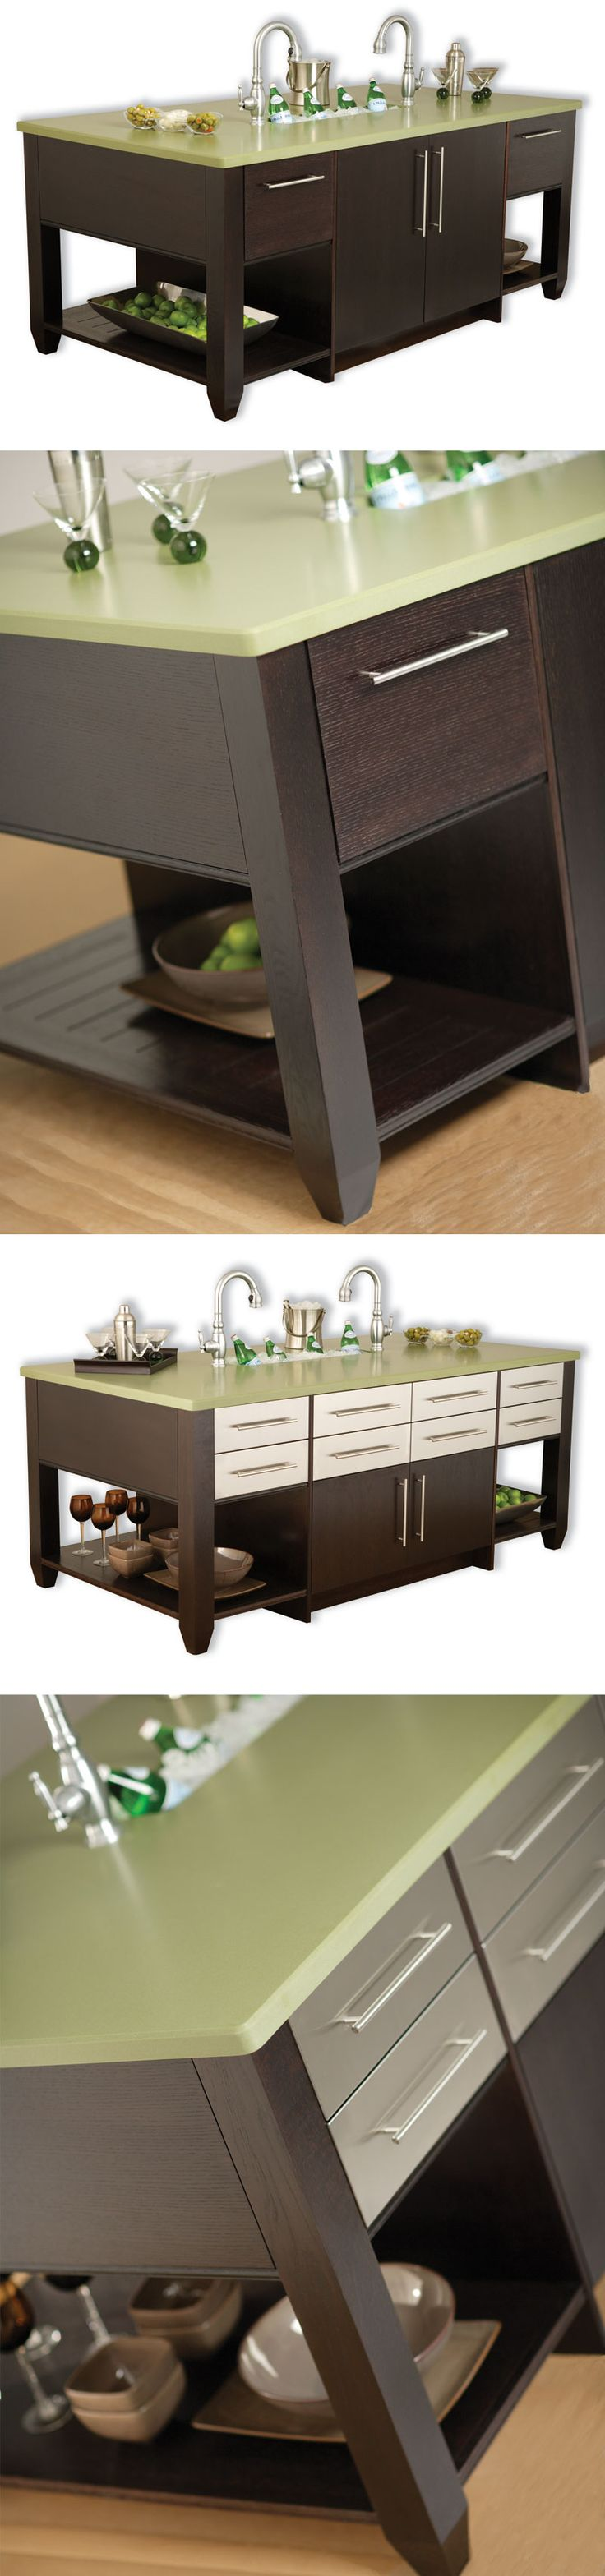 169 best Kitchen Island Time images on Pinterest